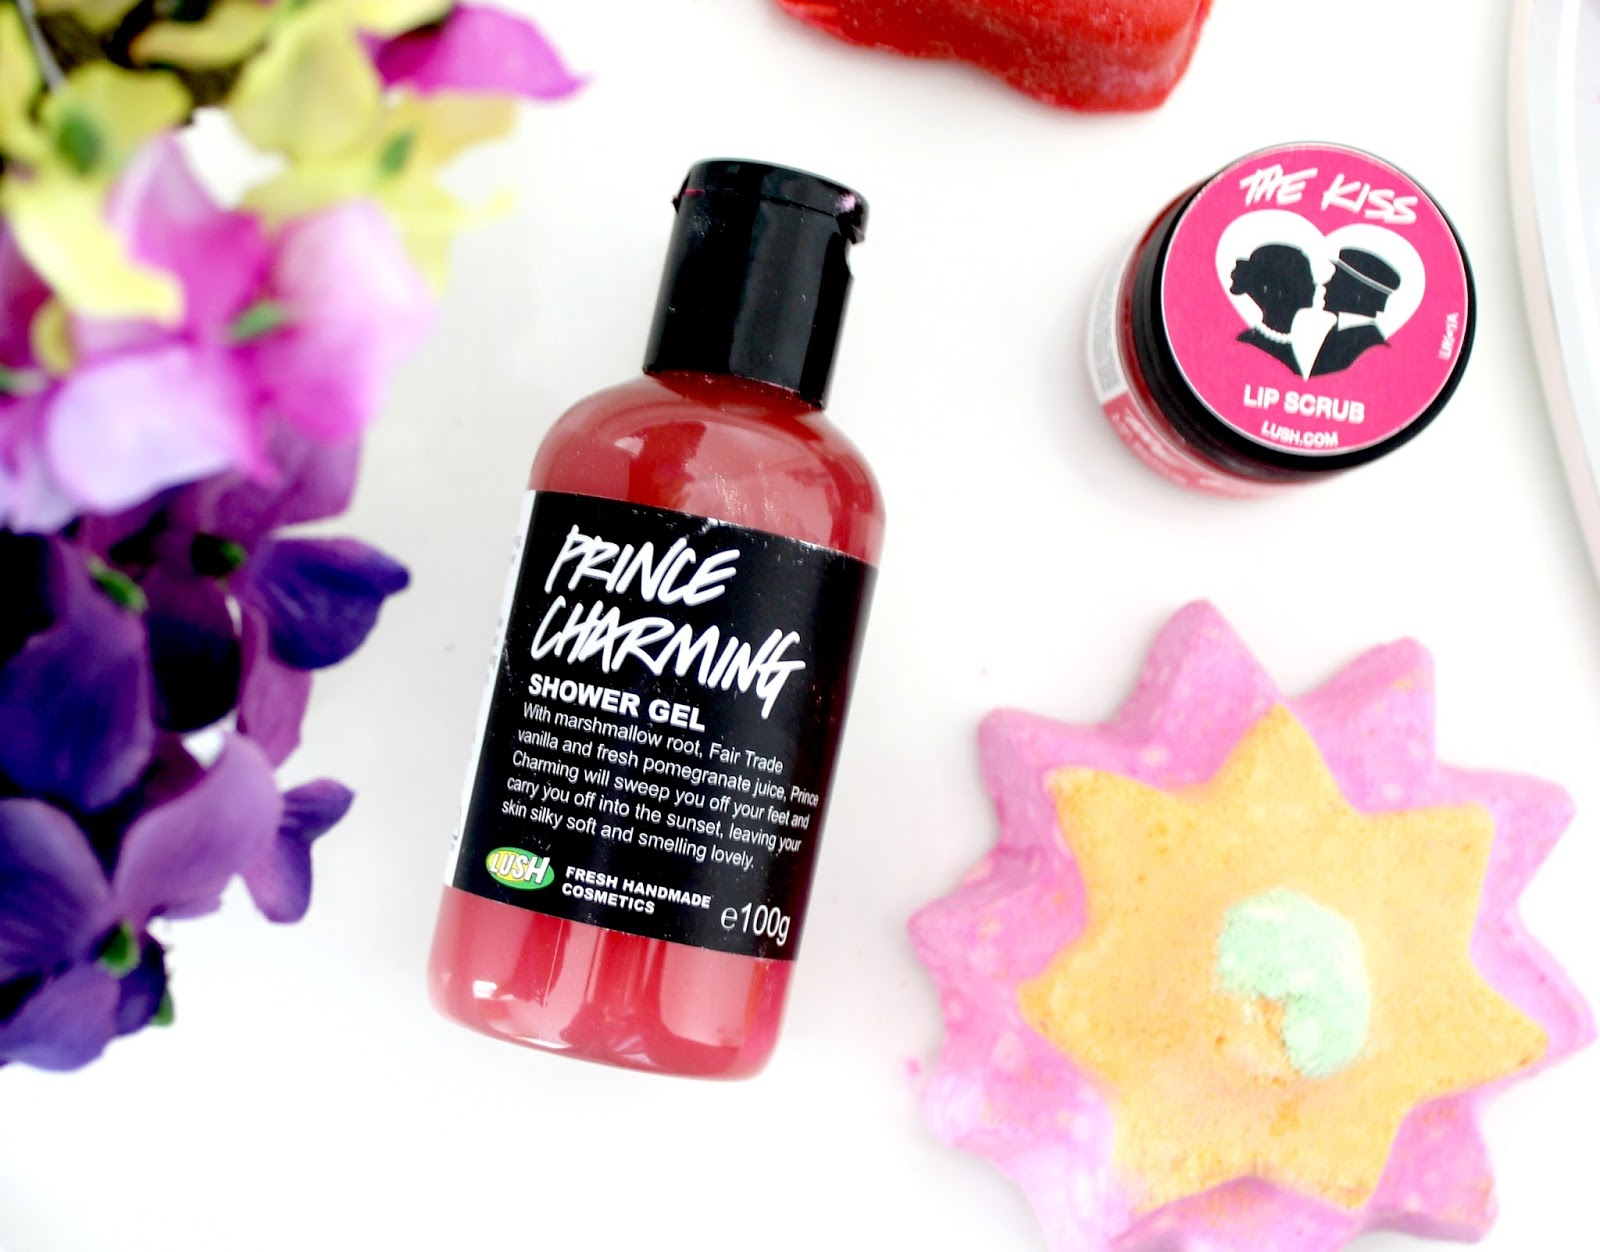 LUSH Valentines Day Collection, LUSH Bath Products, LUSH Limited Edition Valentine's Collection